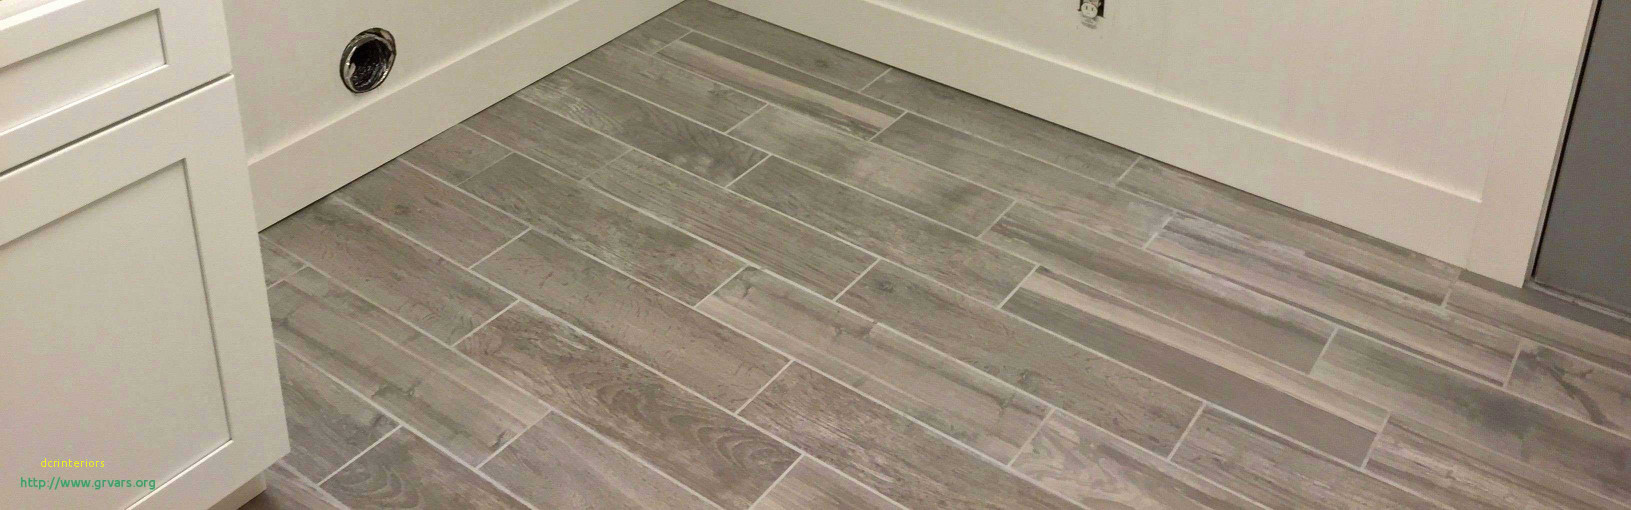 3 4 hardwood flooring of 36 lovely porcelain wood tile photograph with regard to elegant unique bathroom tiling ideas best h sink install bathroom i 0d luxury shower tile inspirational